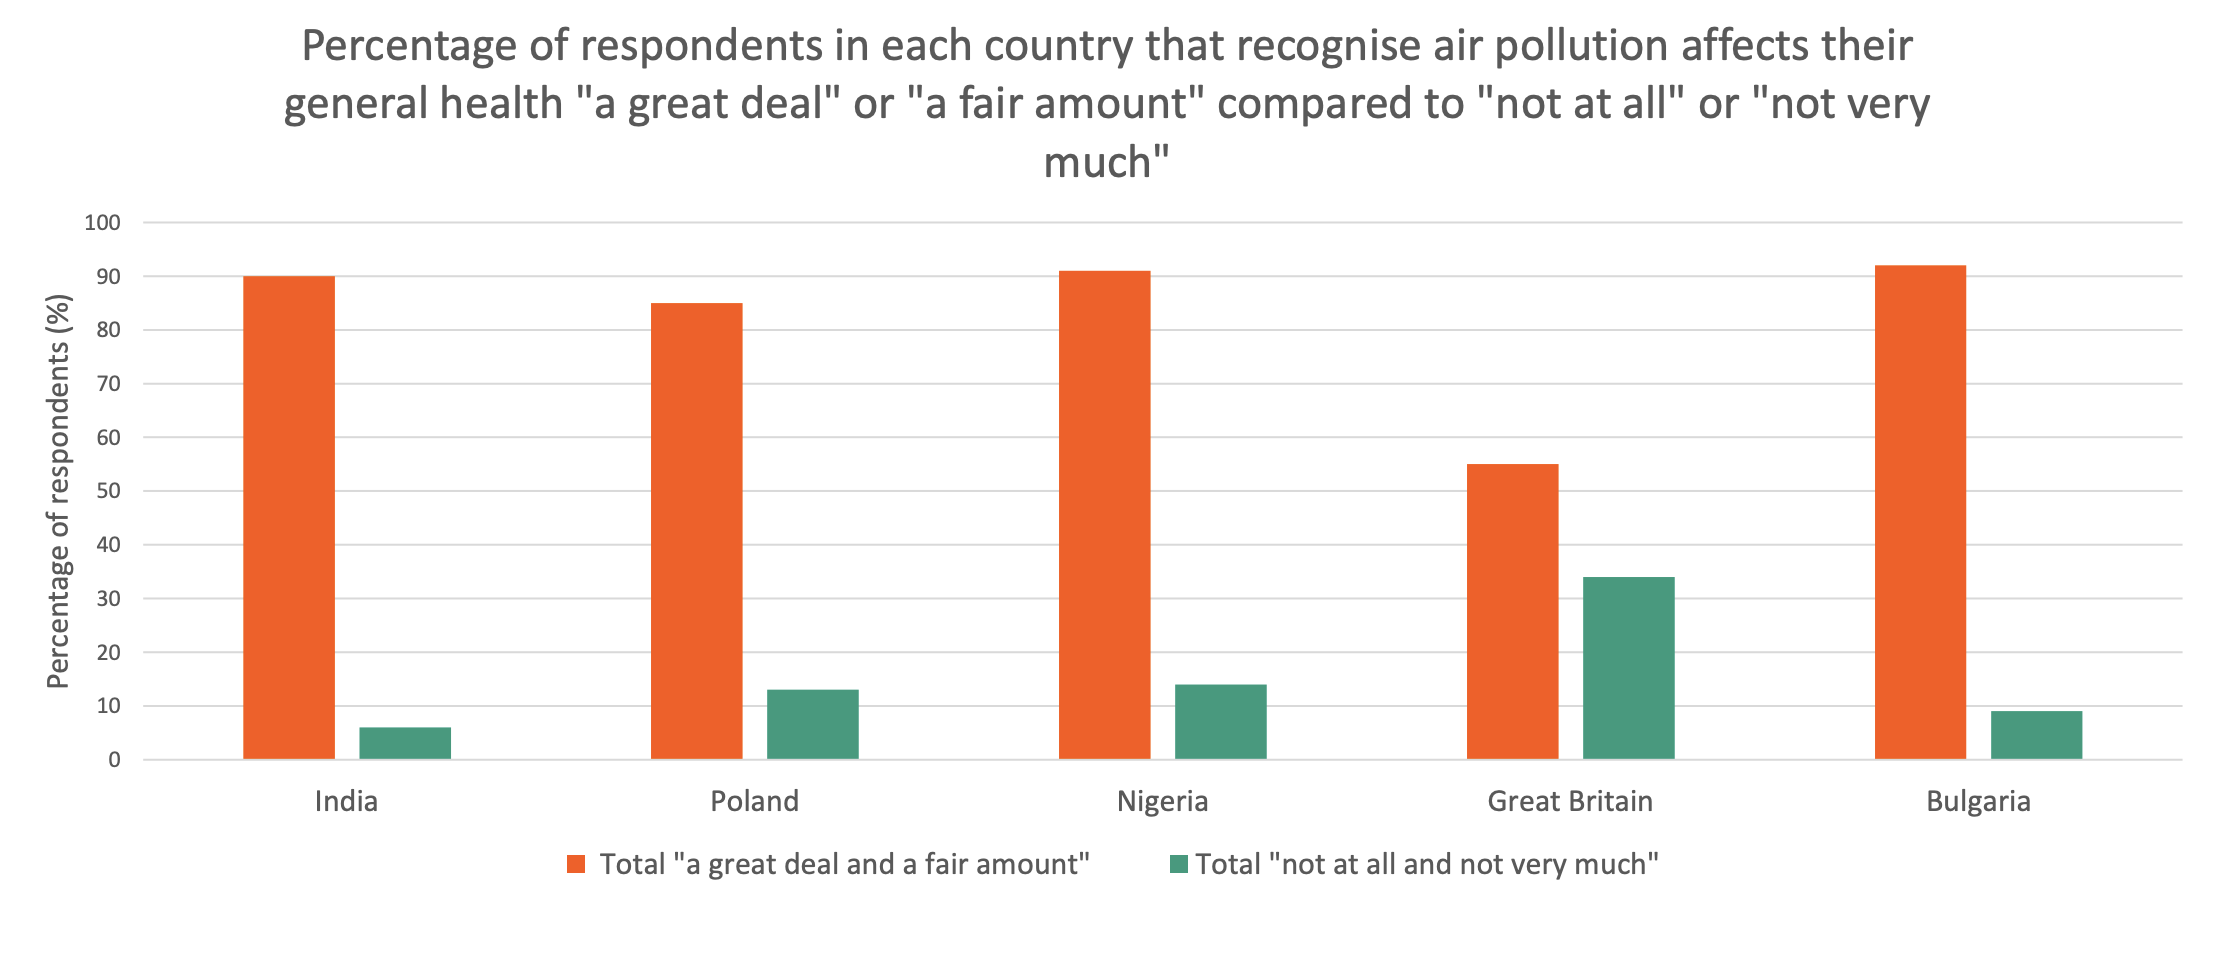 Air pollution is a health concern for people around the world